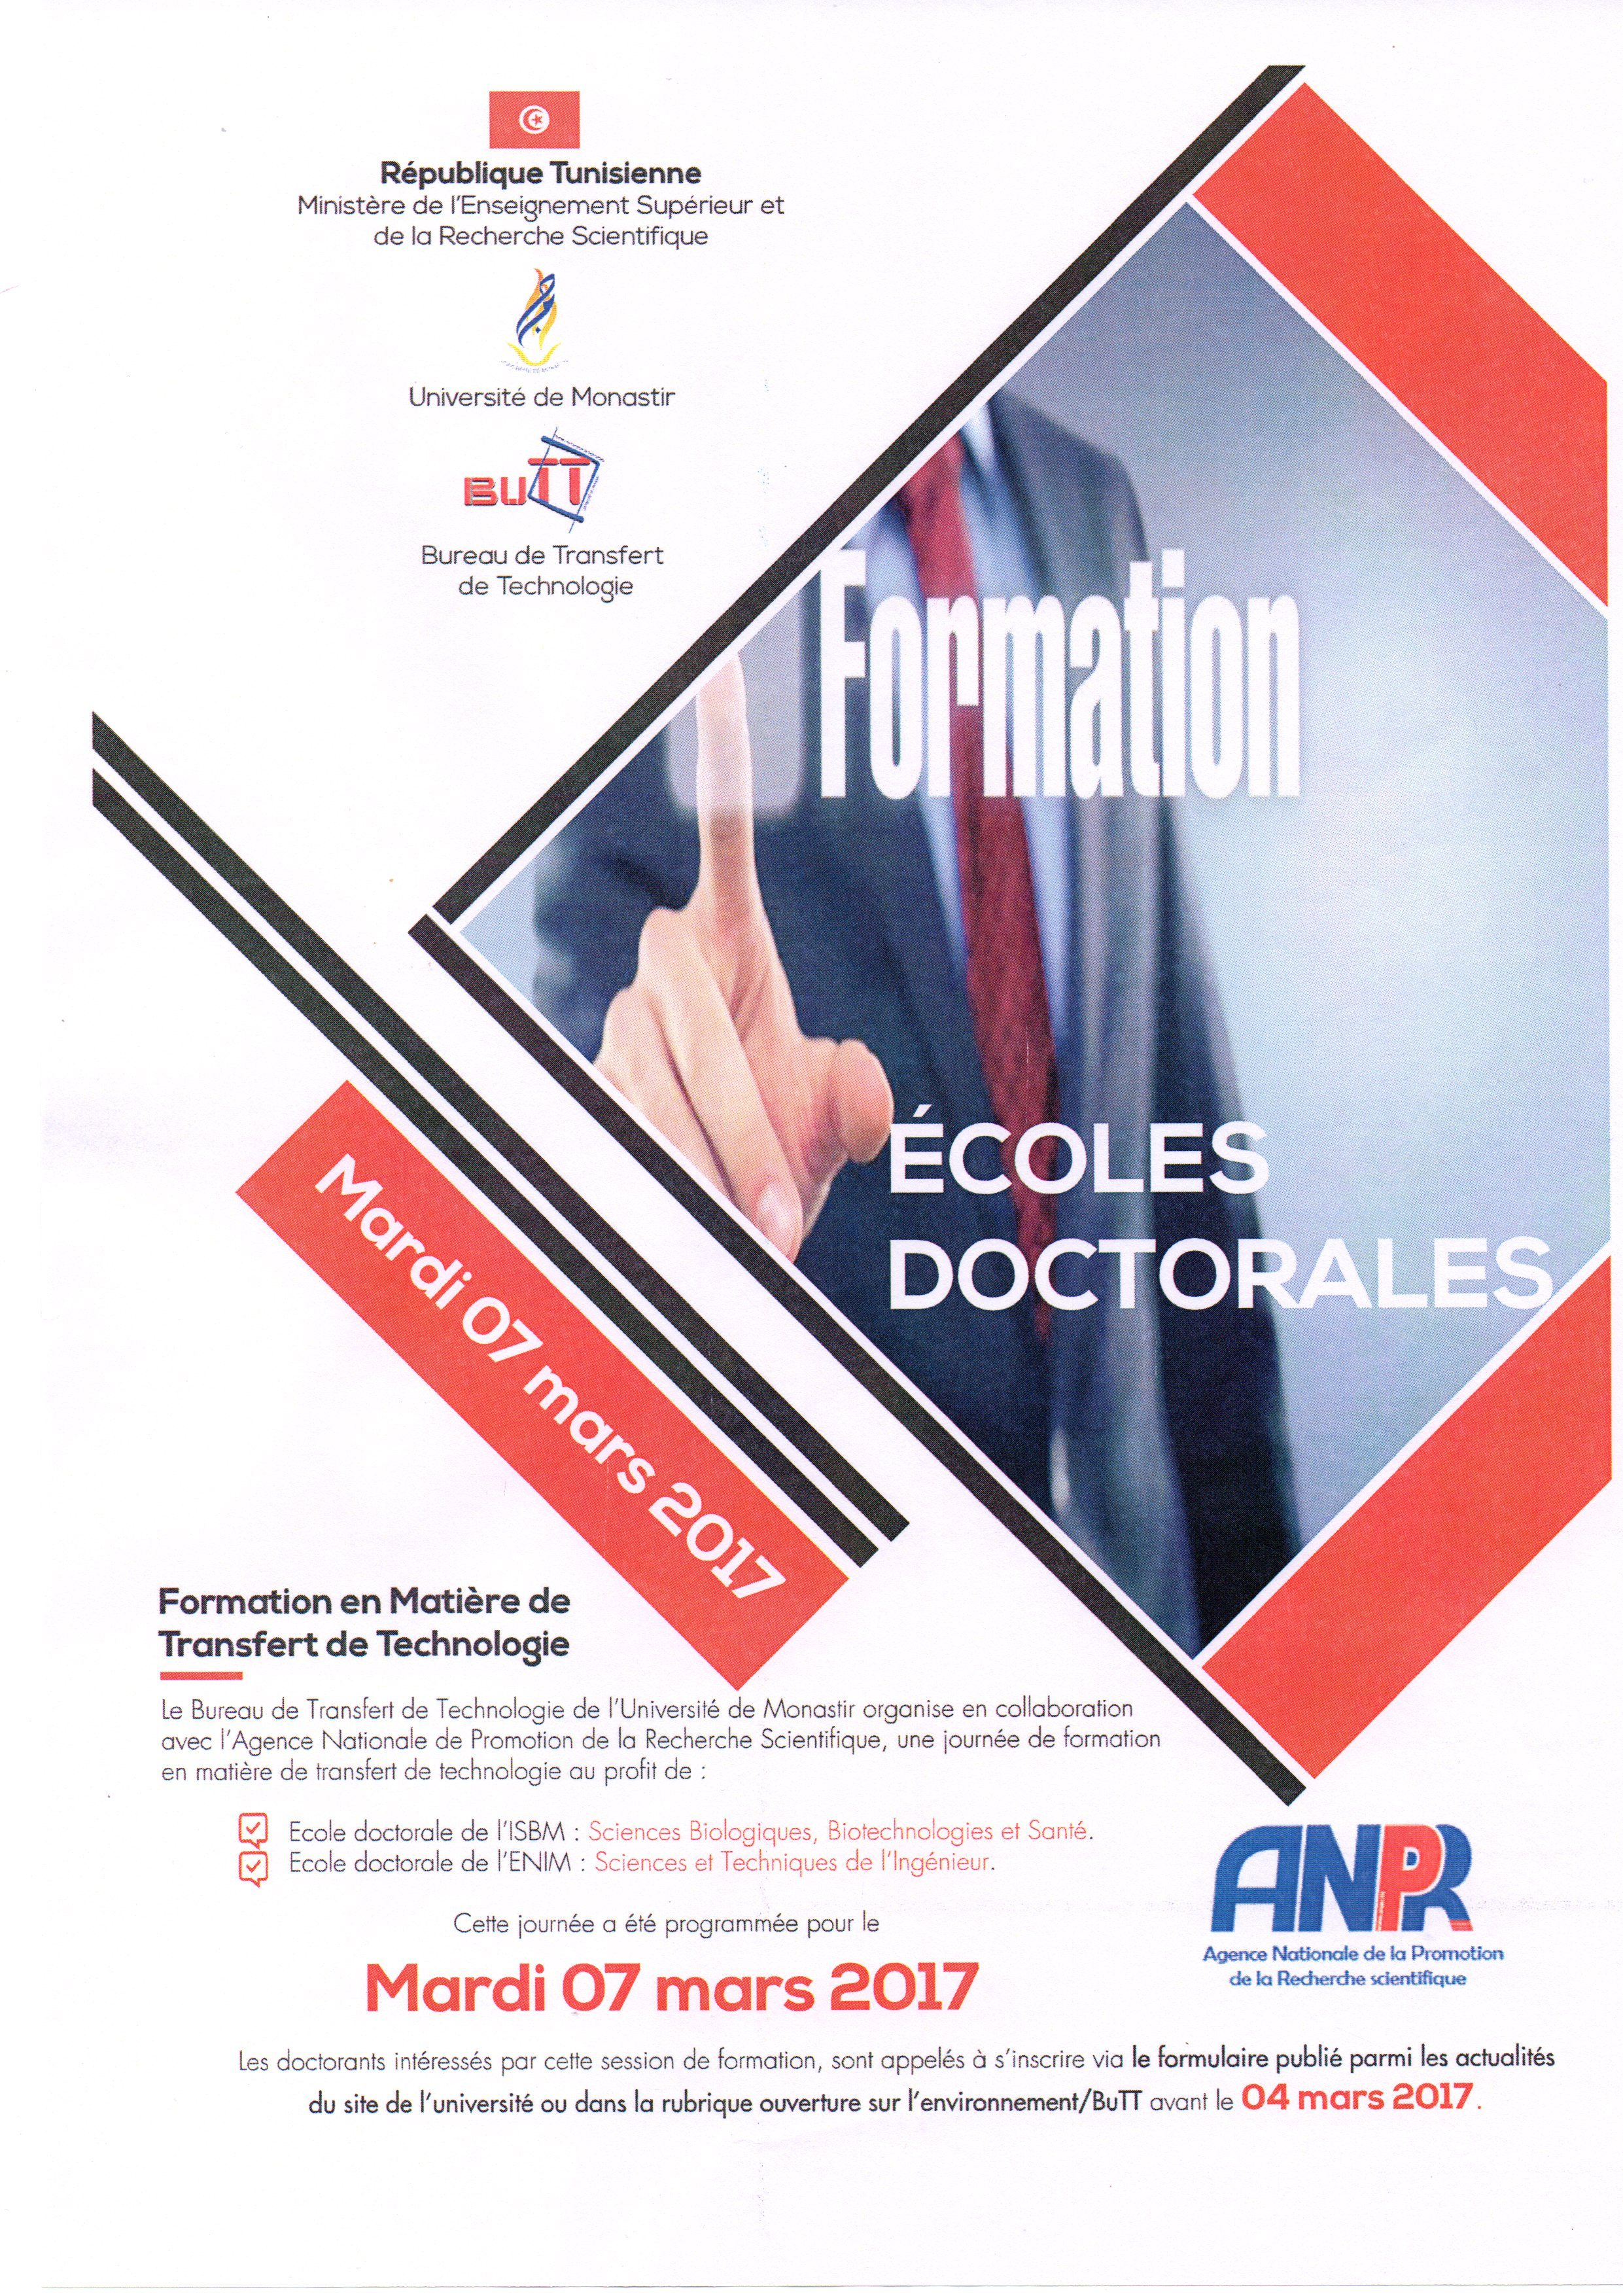 Formation école doctorales